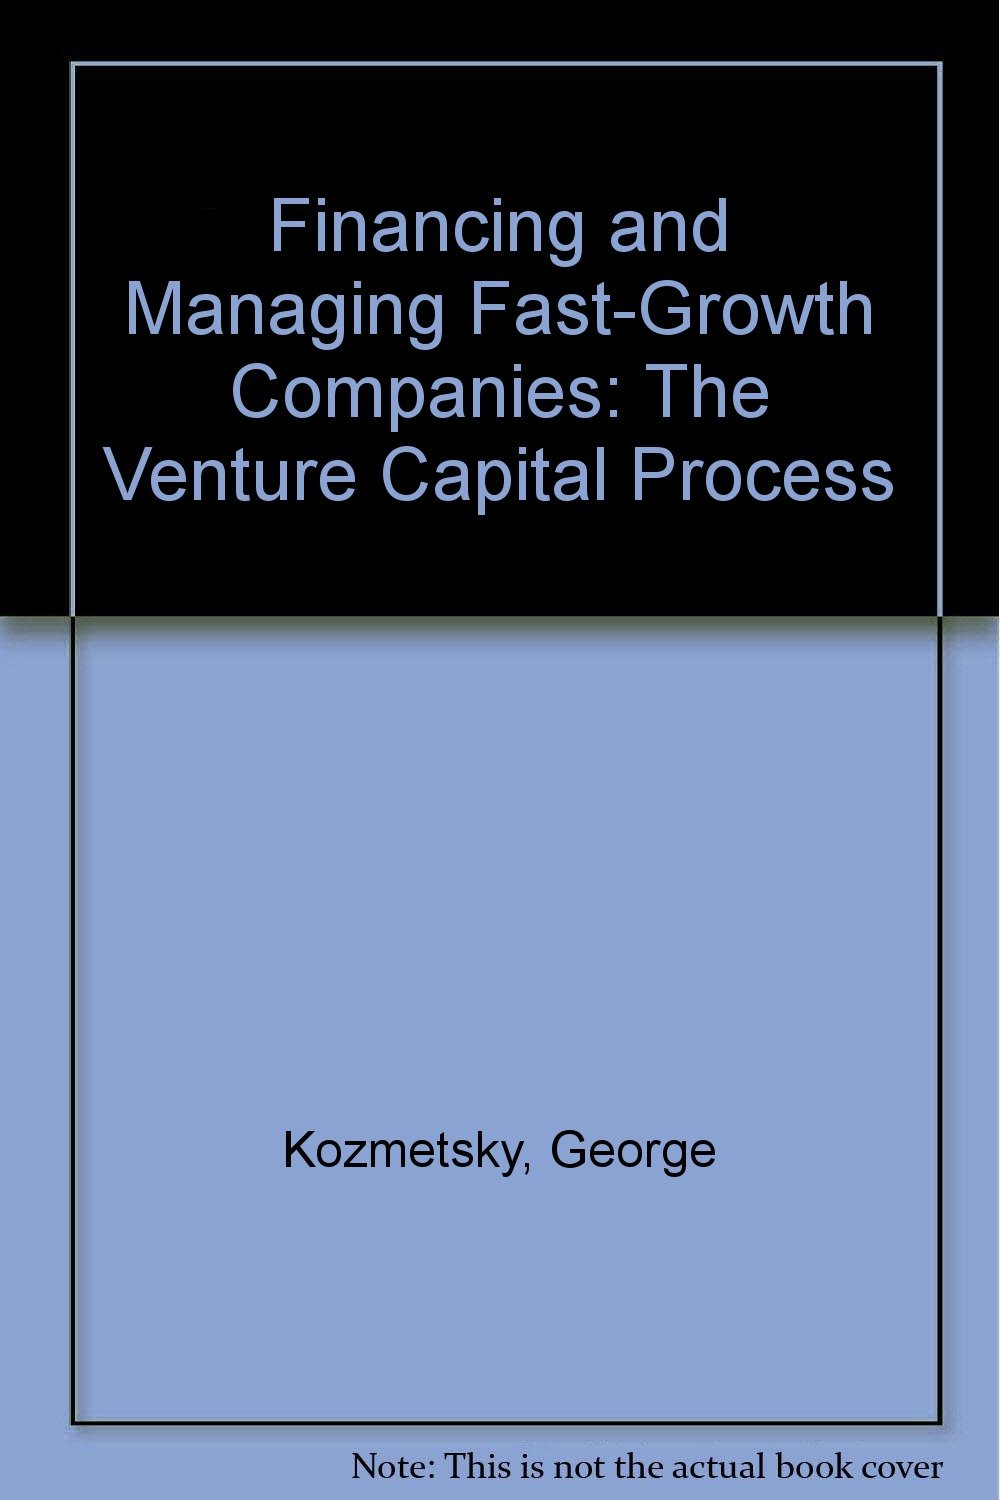 Financing and Managing Fast-Growth Companies: The Venture Capital Process